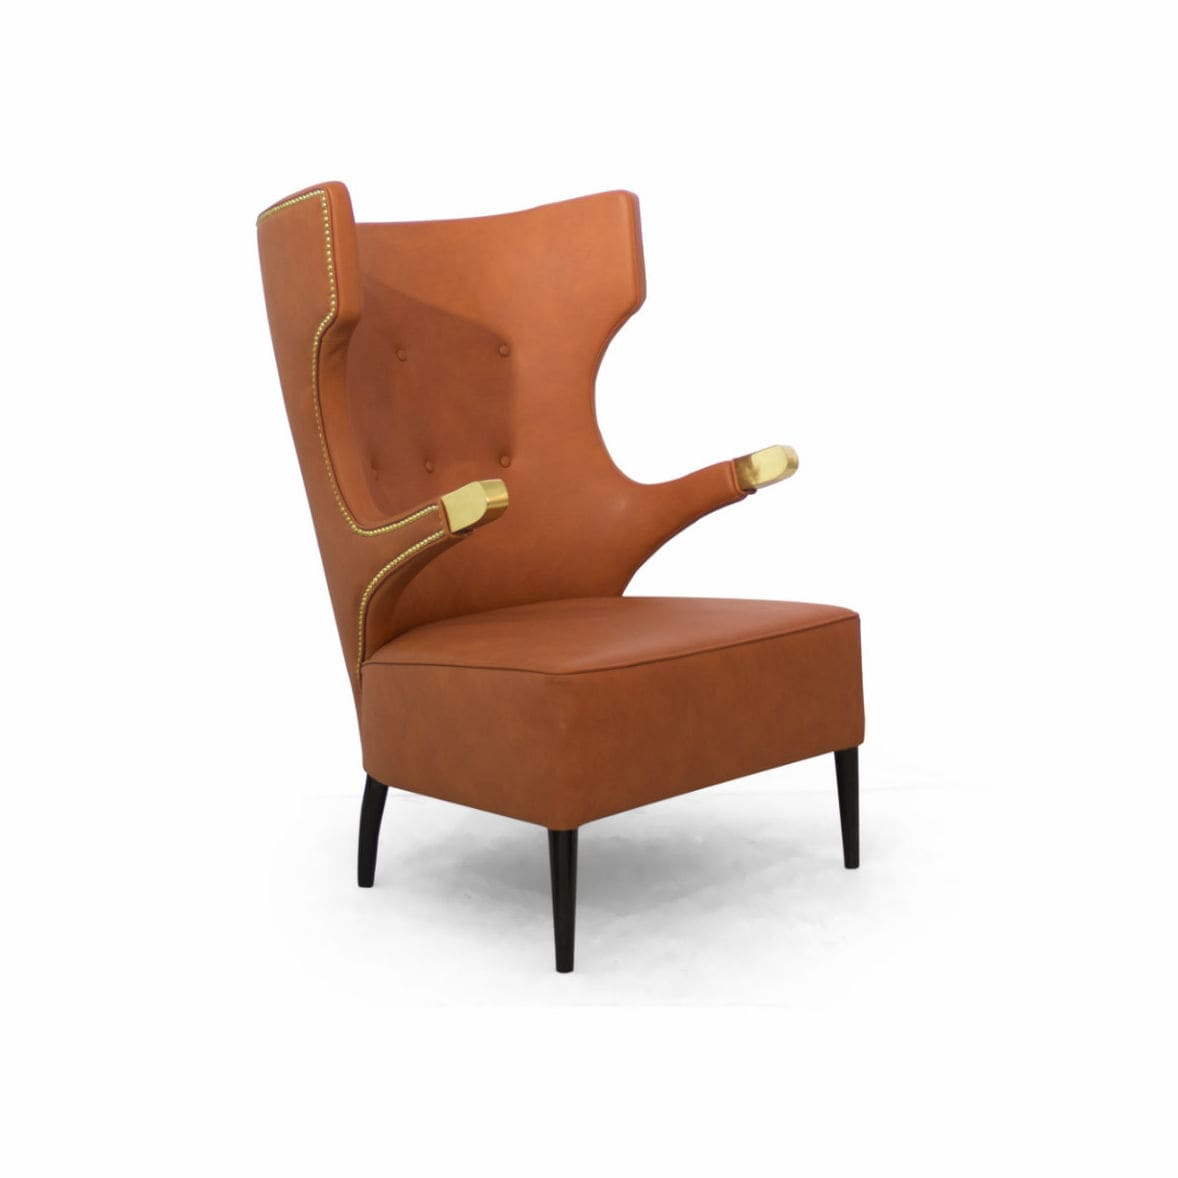 Brown Leather Wingback Chair Sika Contemporary Armchair Synthetic Leather Wing High Back By Brabbu Design Forces Archiexpo